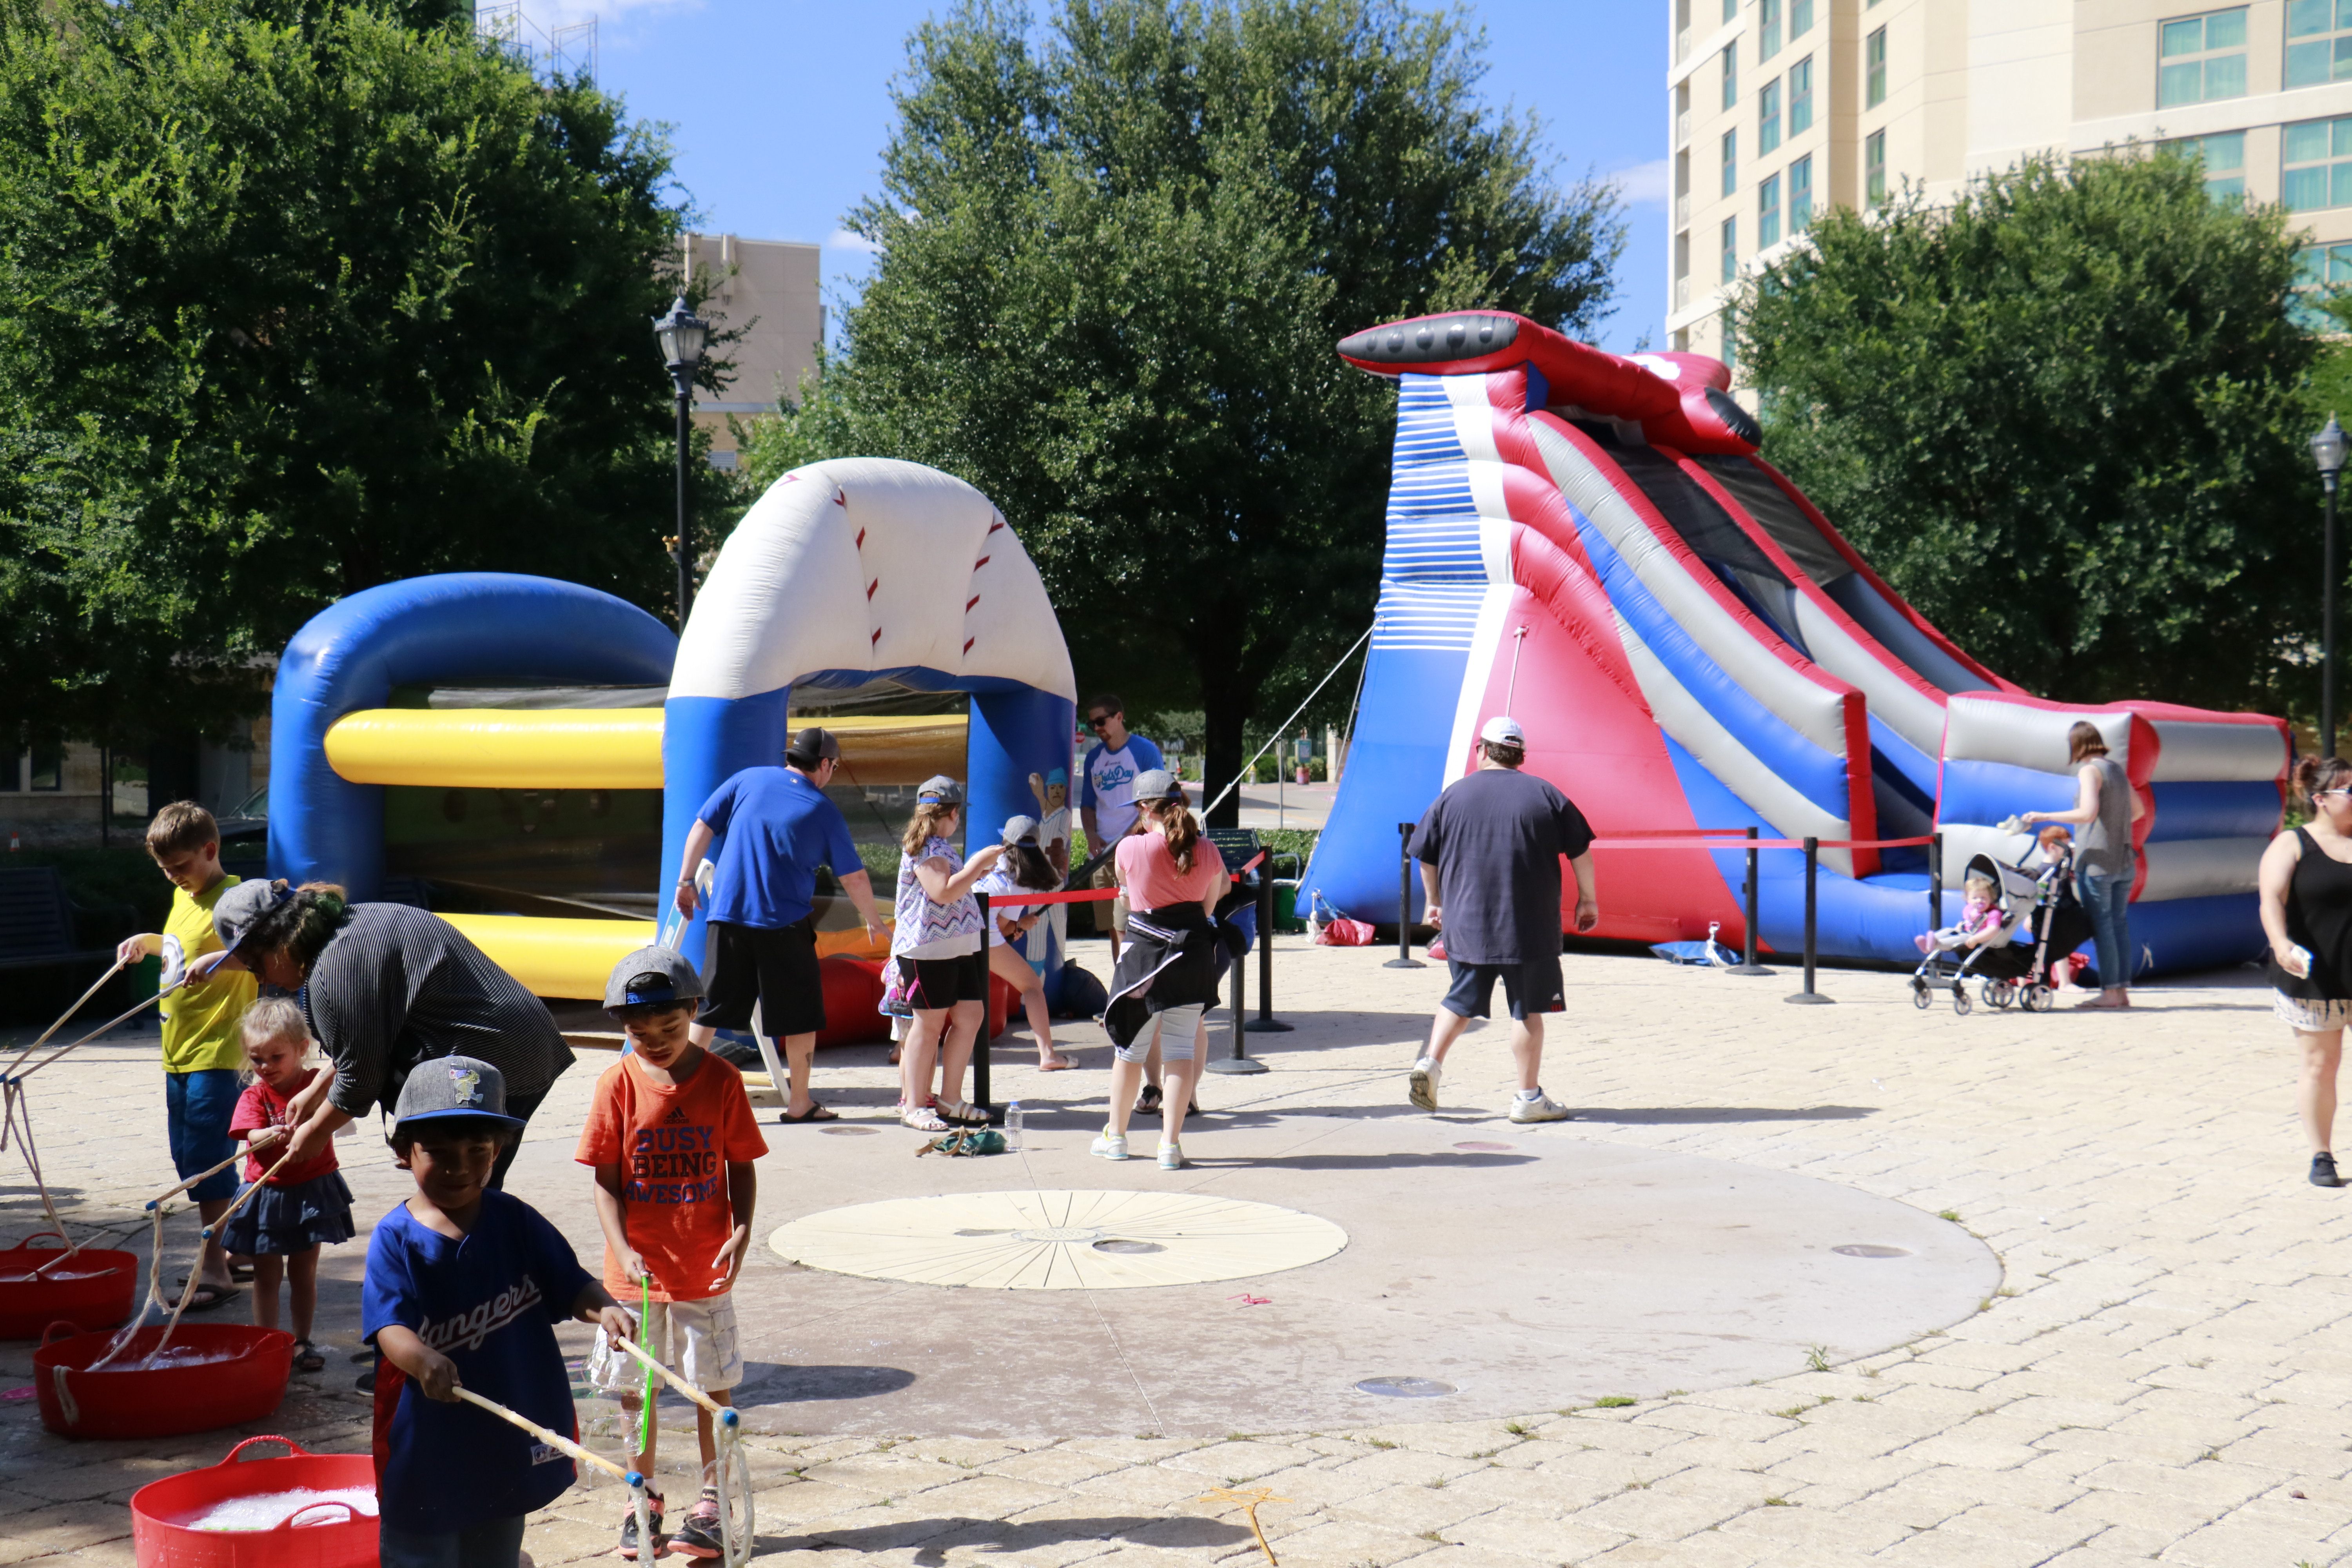 Carnival Cruise Line Teams Up With Frisco RoughRiders to Sponsor Annual Kids Day Event for Local Youth